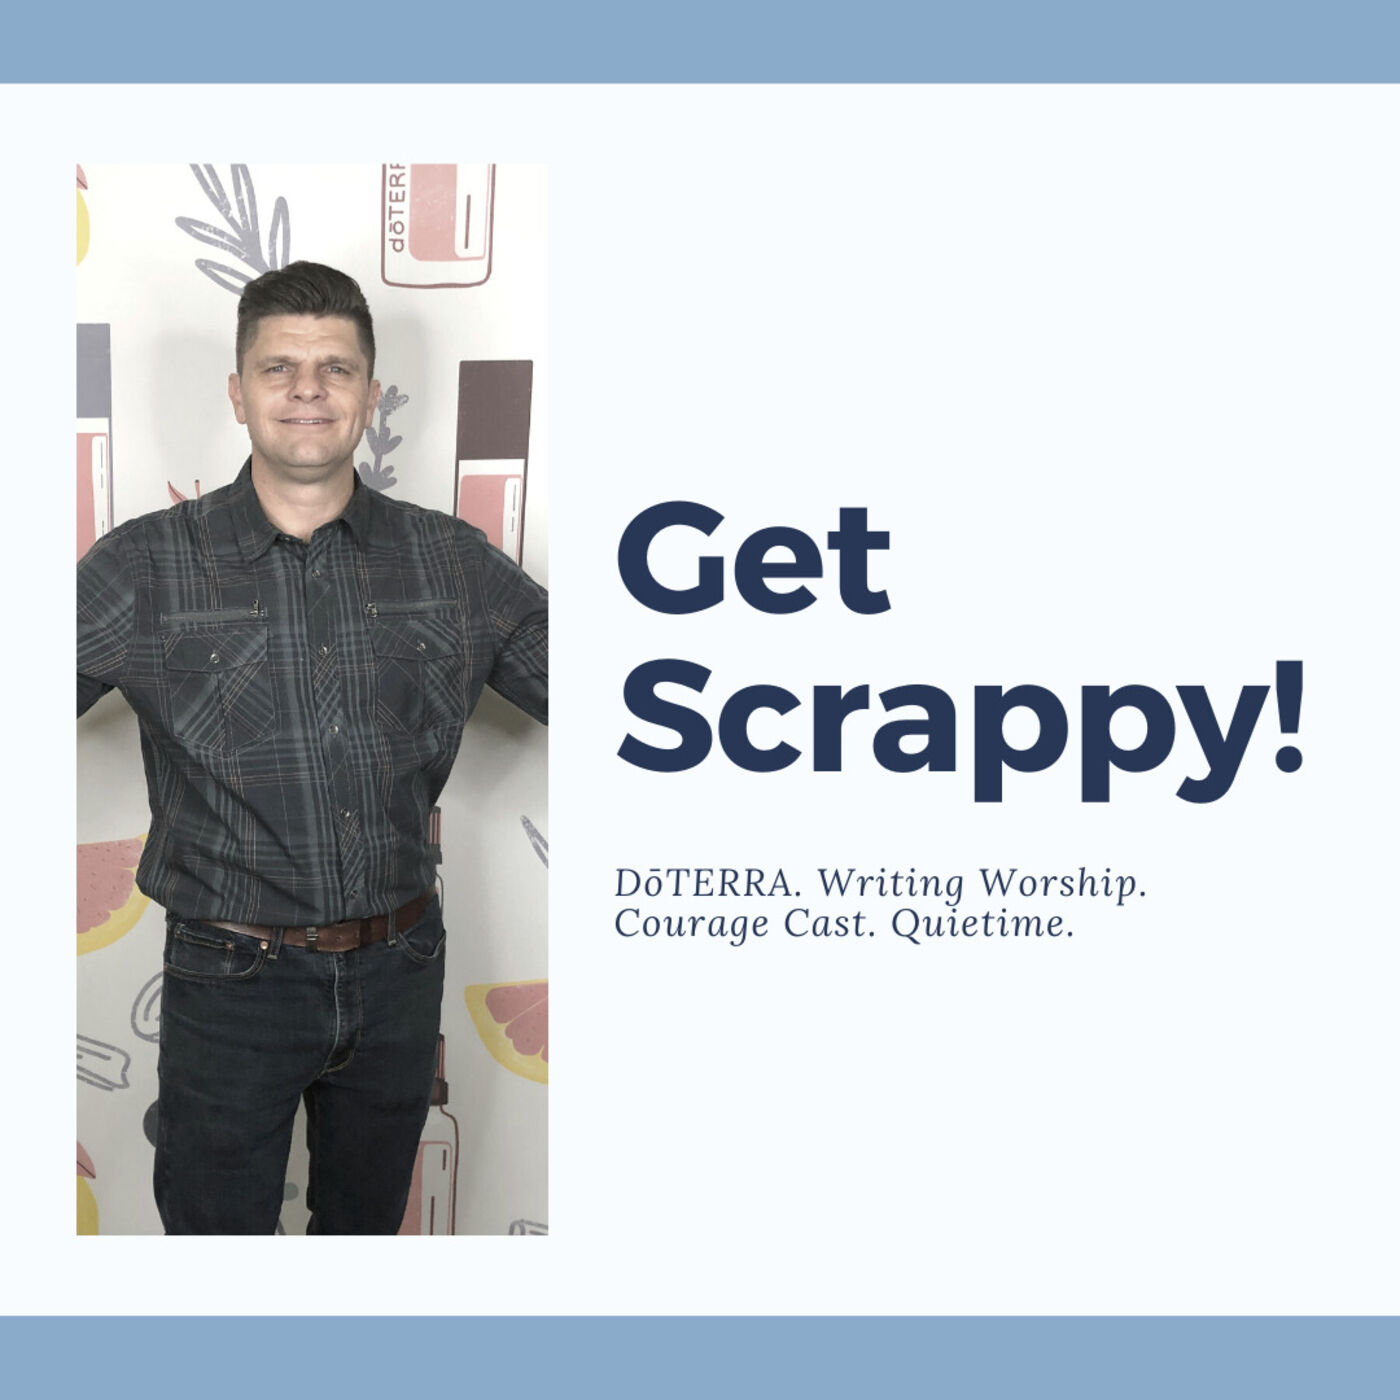 502 - Motivation Monday | Get Scrappy